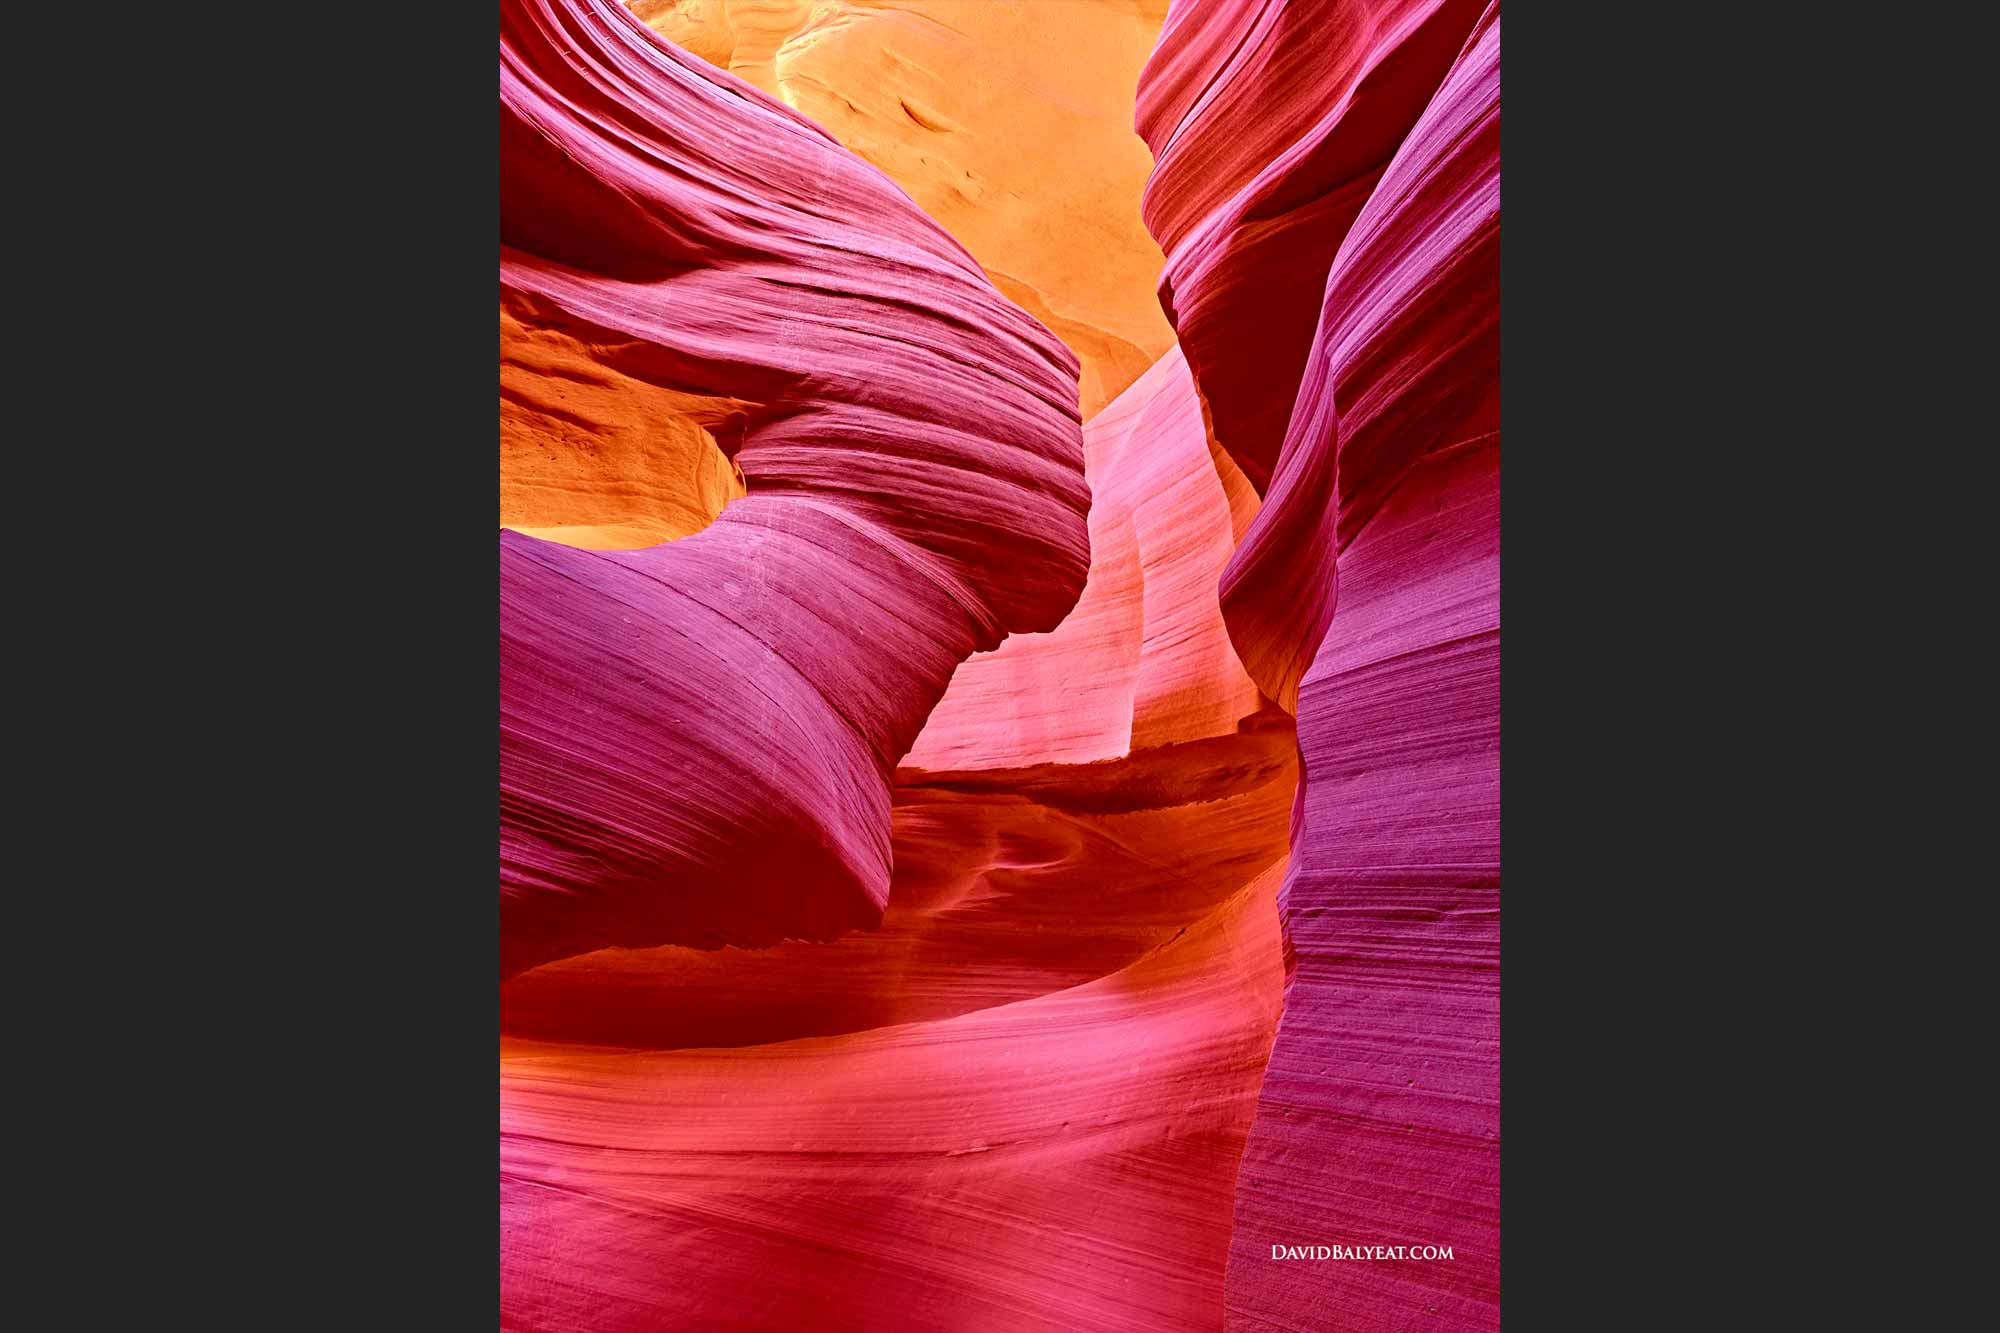 Antelope Canyon Arizona Earth Angel lady high-definition HD professional landscape photography